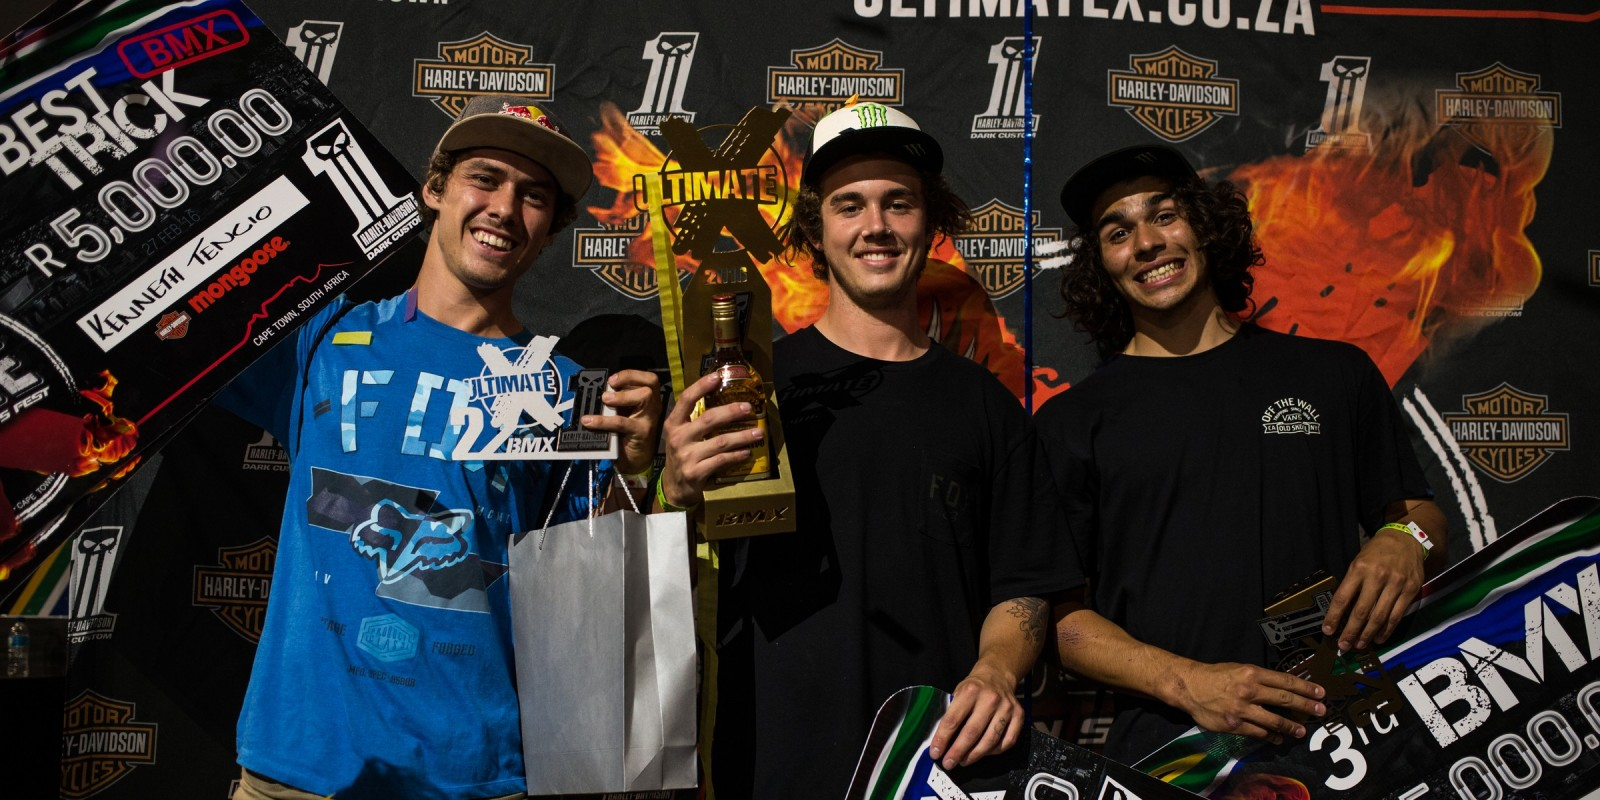 Ultimate X 2016